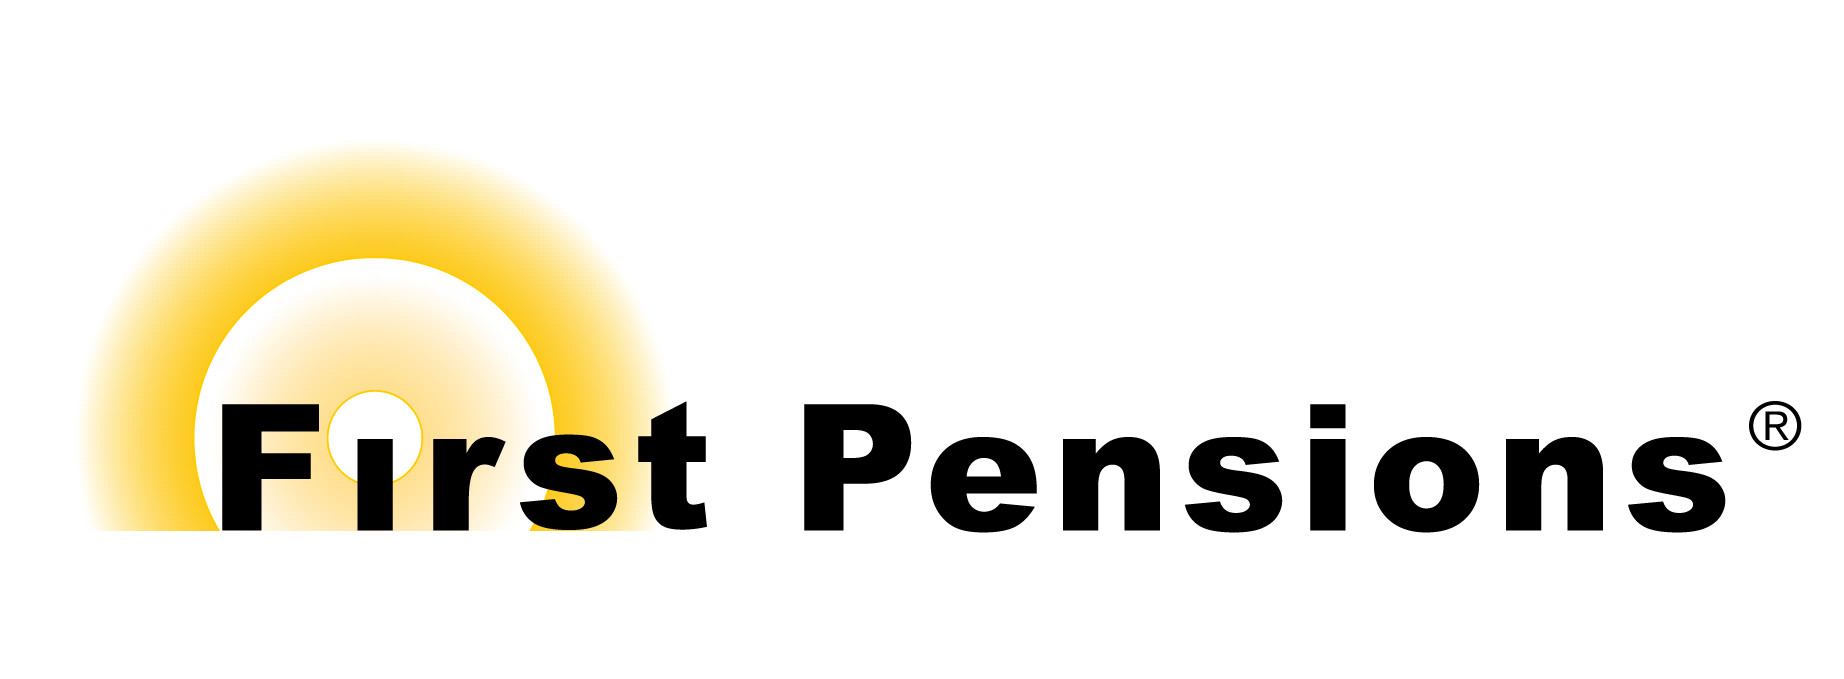 FirstPensions